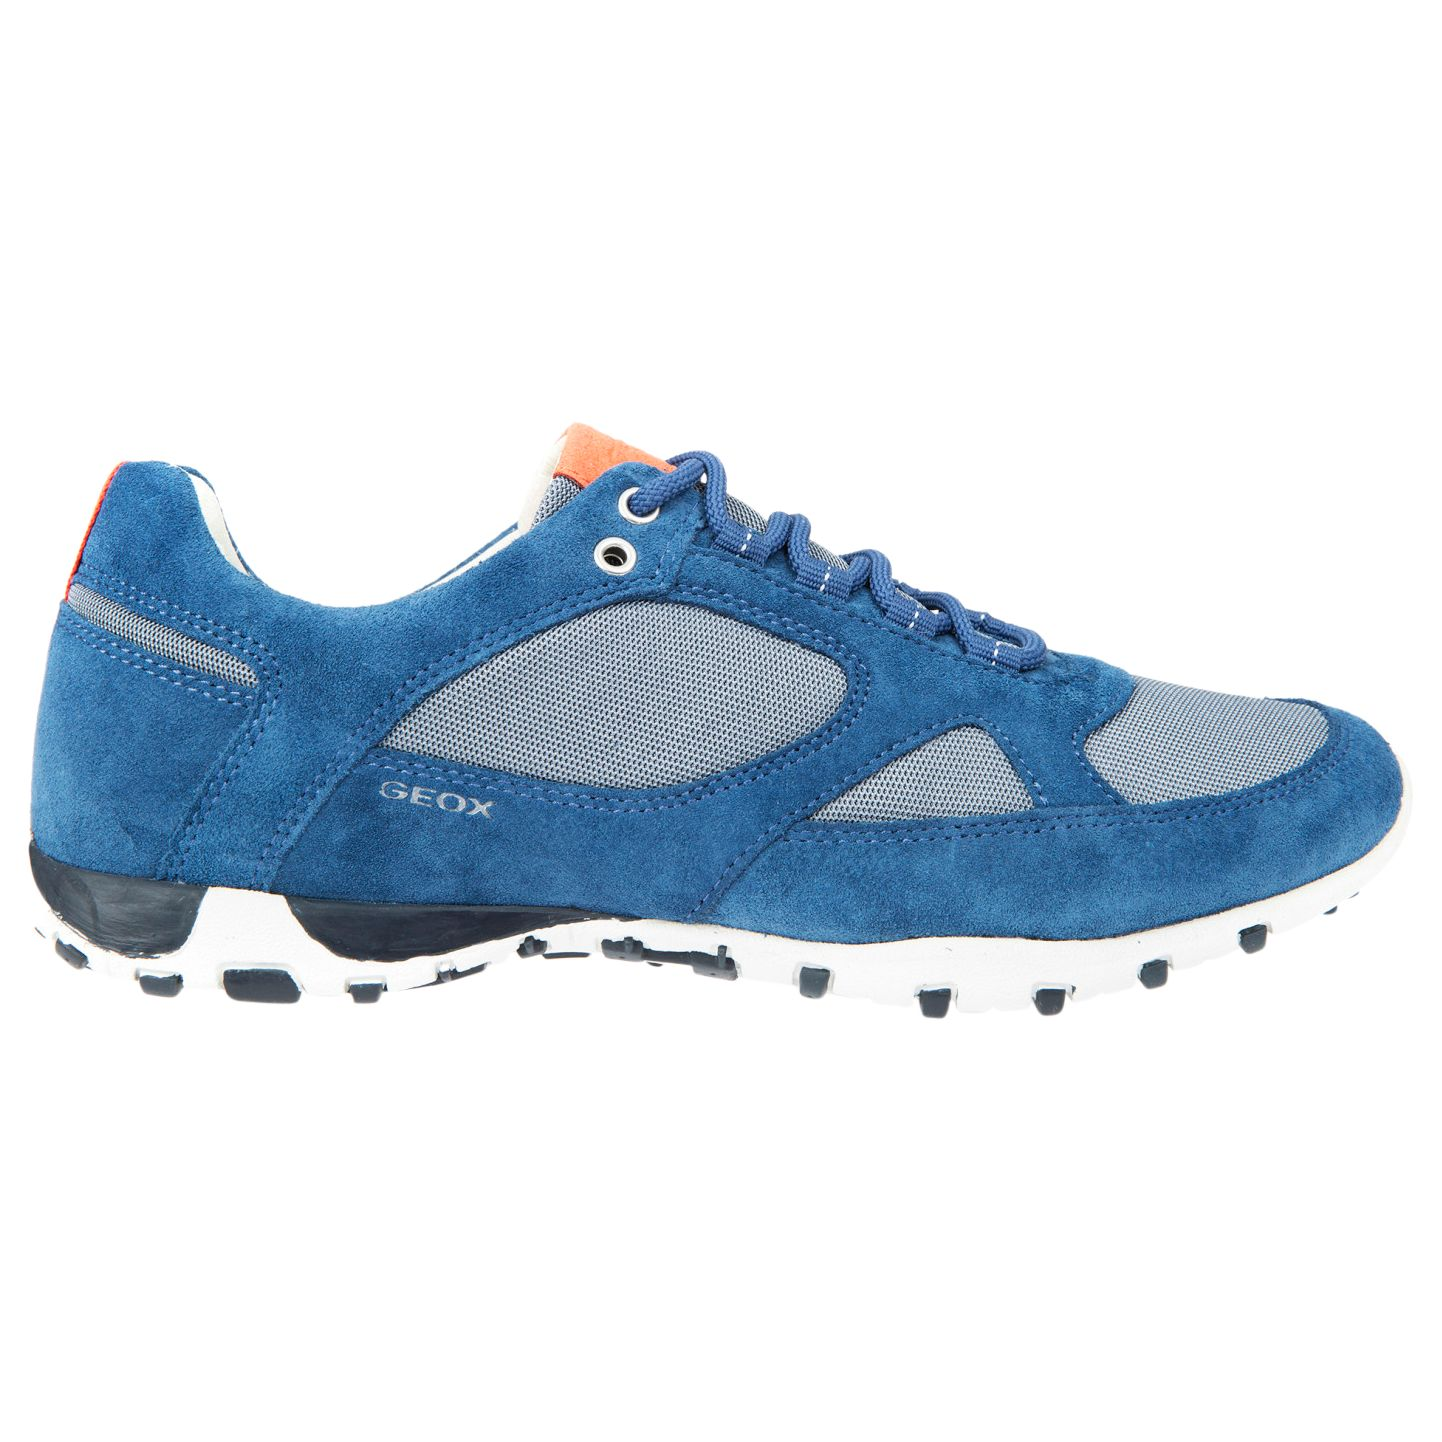 Geox Geox Freccia Lace Up Trainers